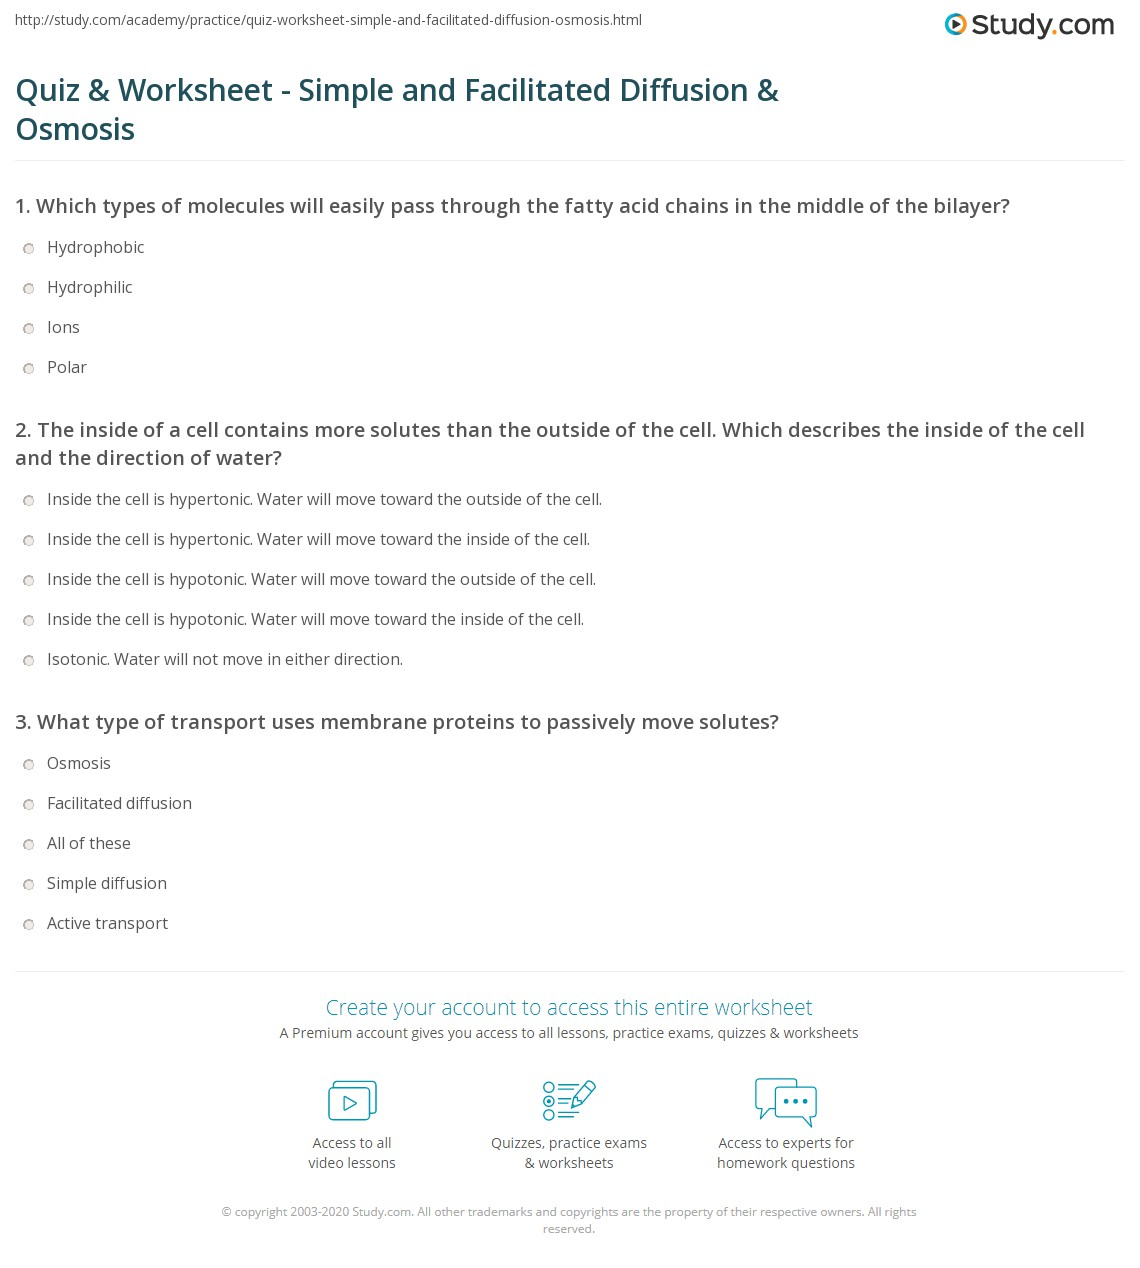 Quiz & Worksheet - Simple and Facilitated Diffusion & Osmosis ...